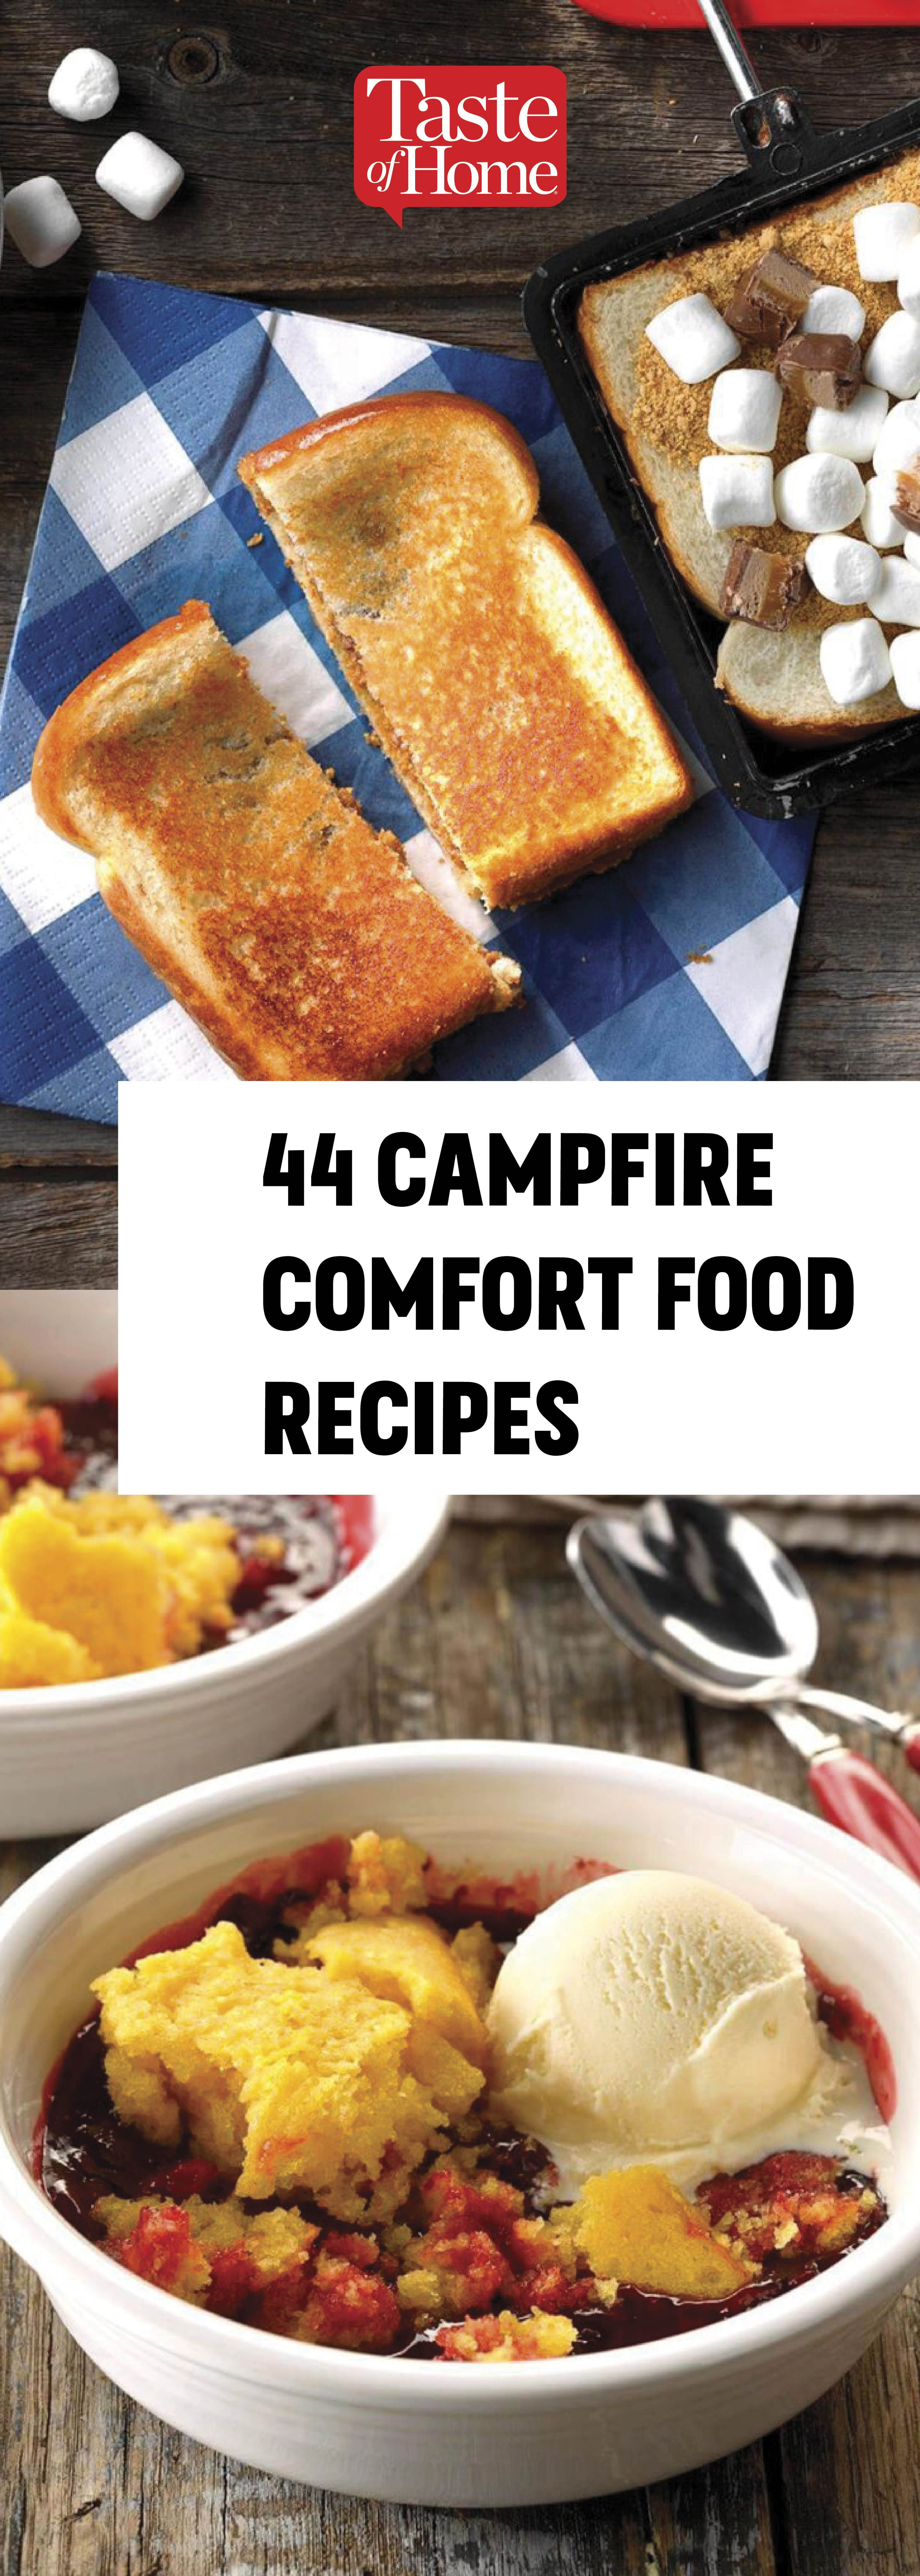 44 Campfire Comfort Food Recipes To Make On Your Next